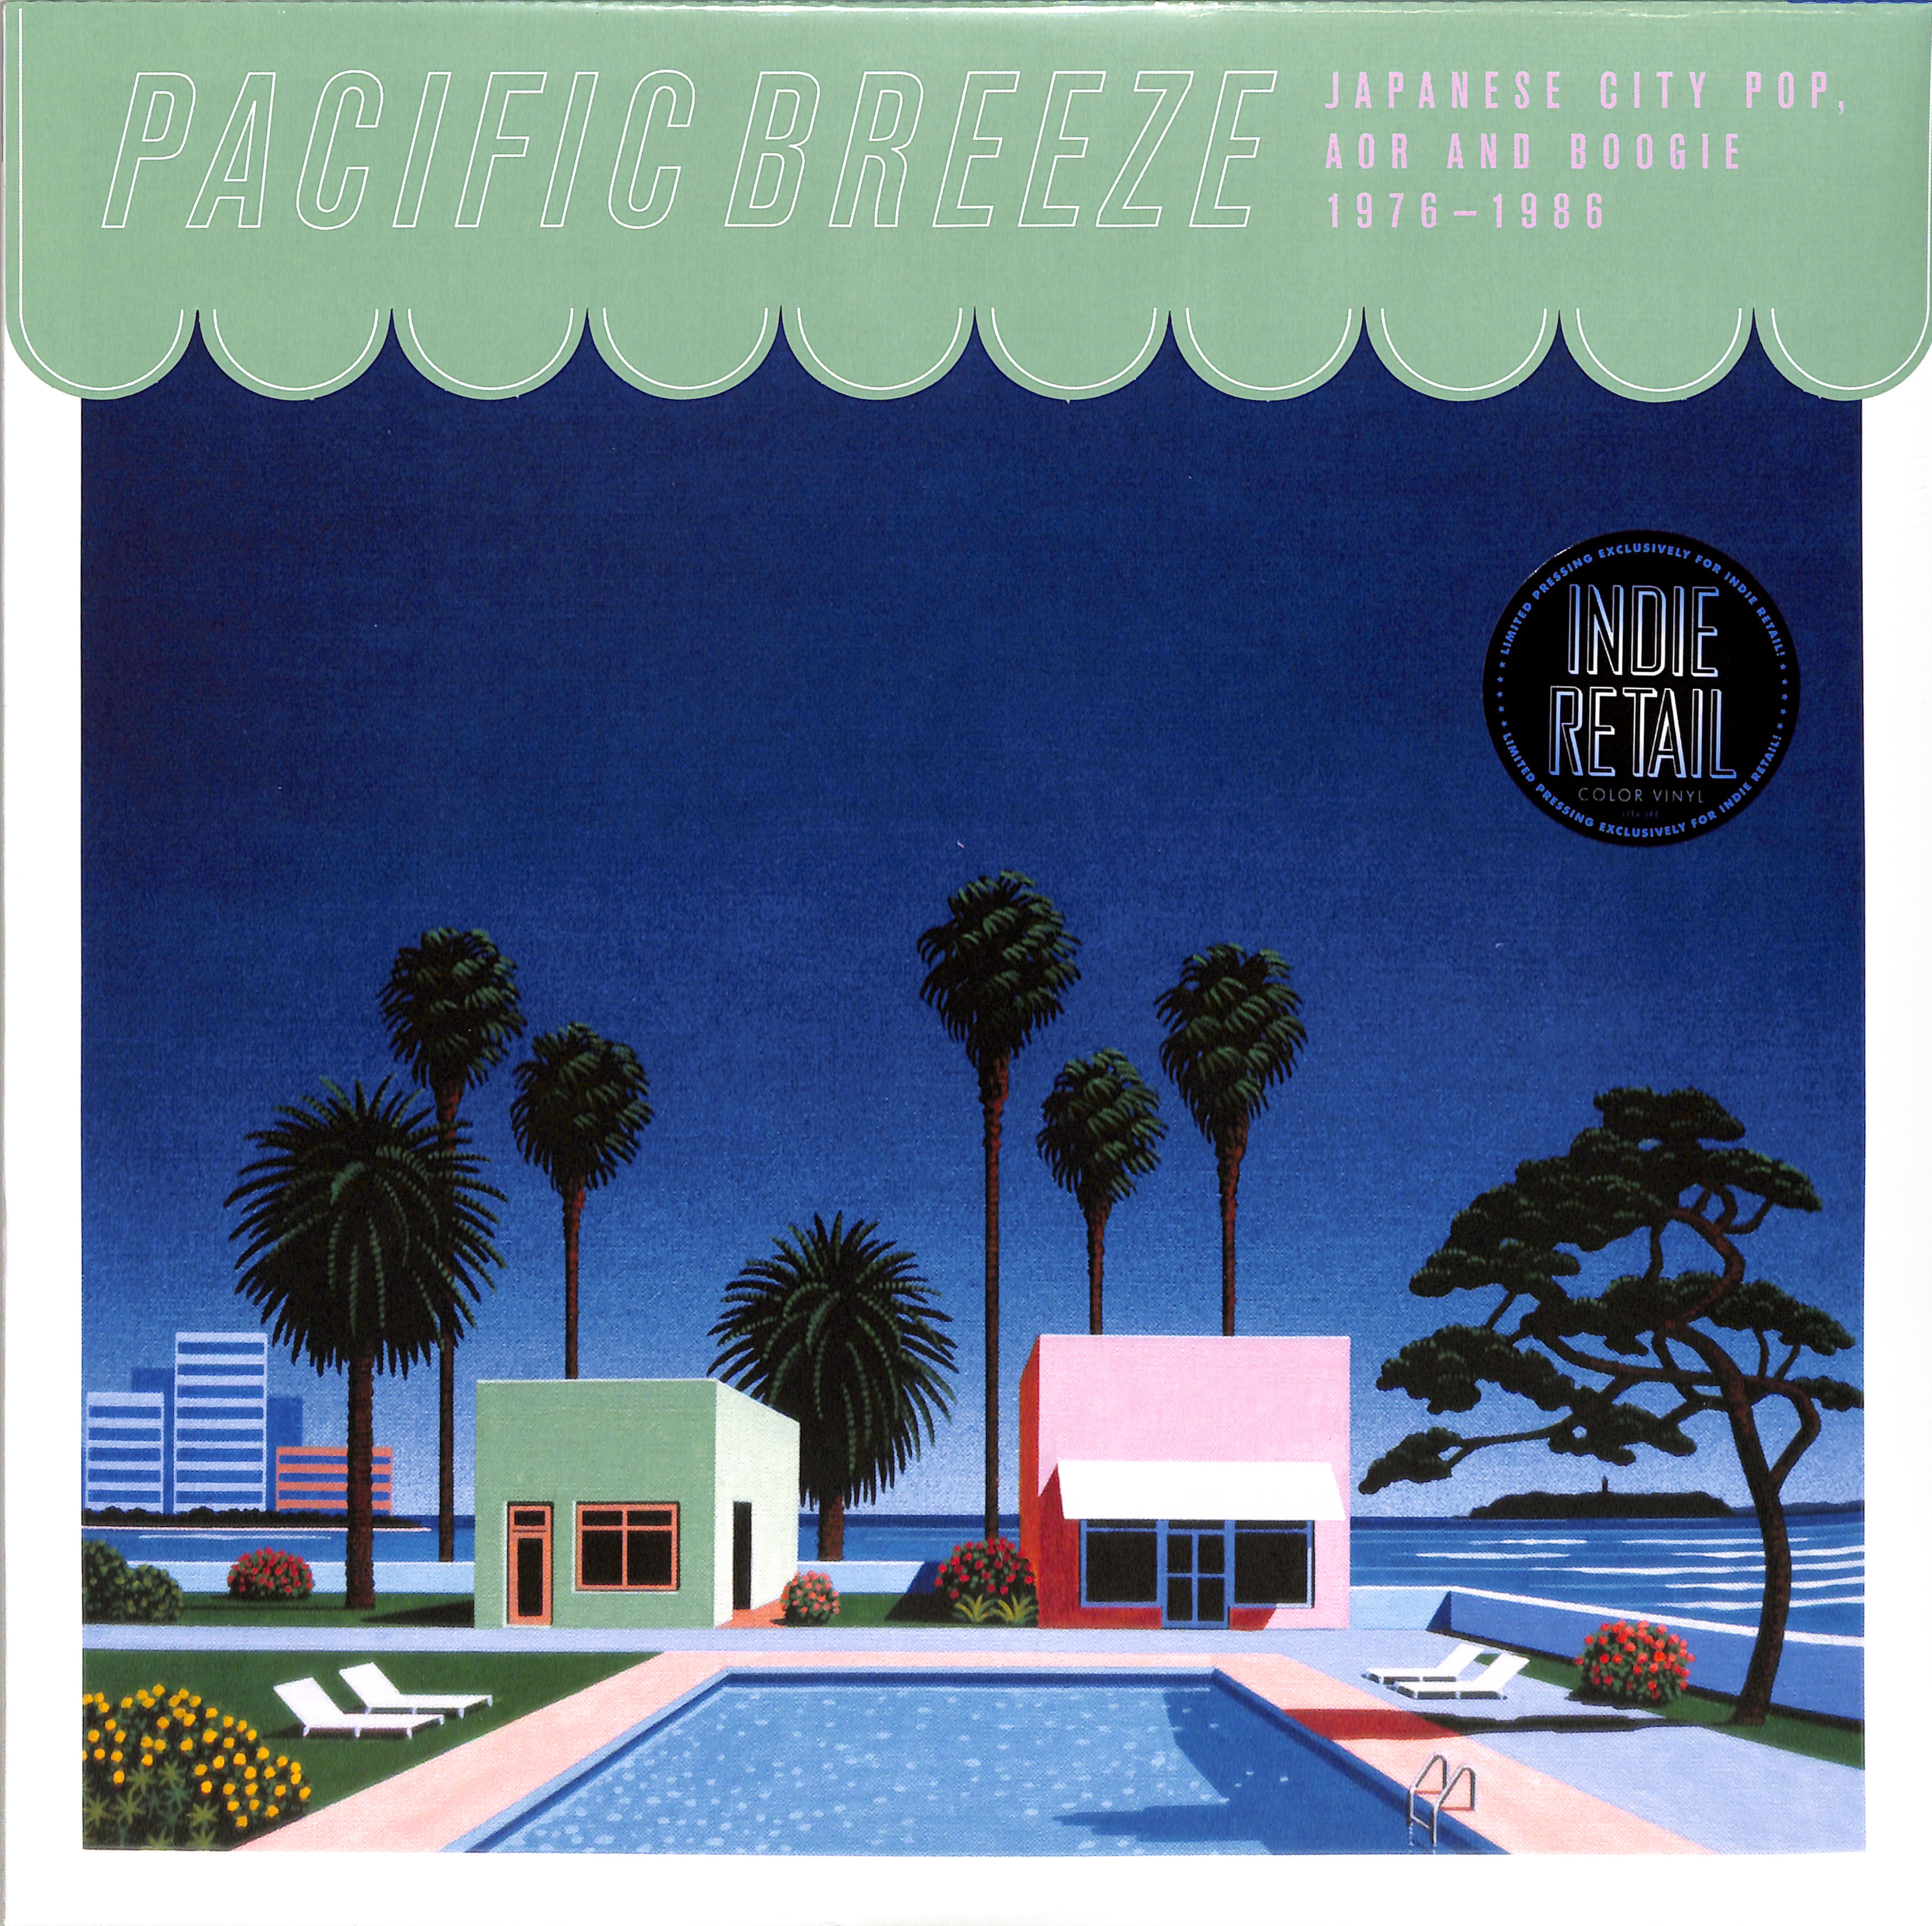 Various Artists - PACIFIC BREEZE: JAPANESE CITY POP